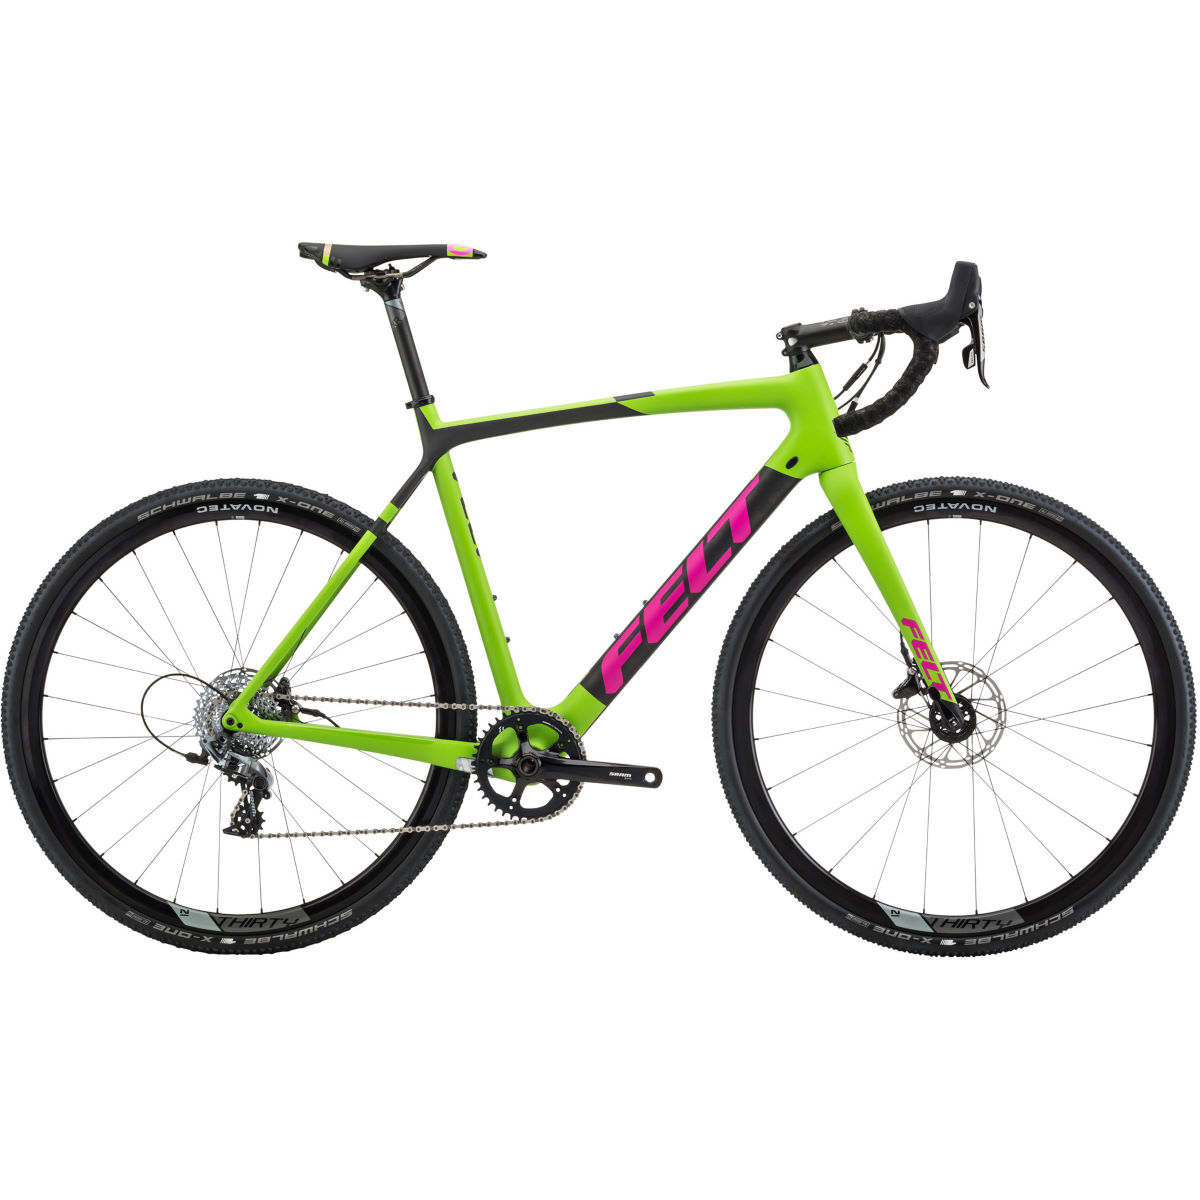 Vélo de cyclo-cross Felt F4X (2018) - 57cm Stock Bike